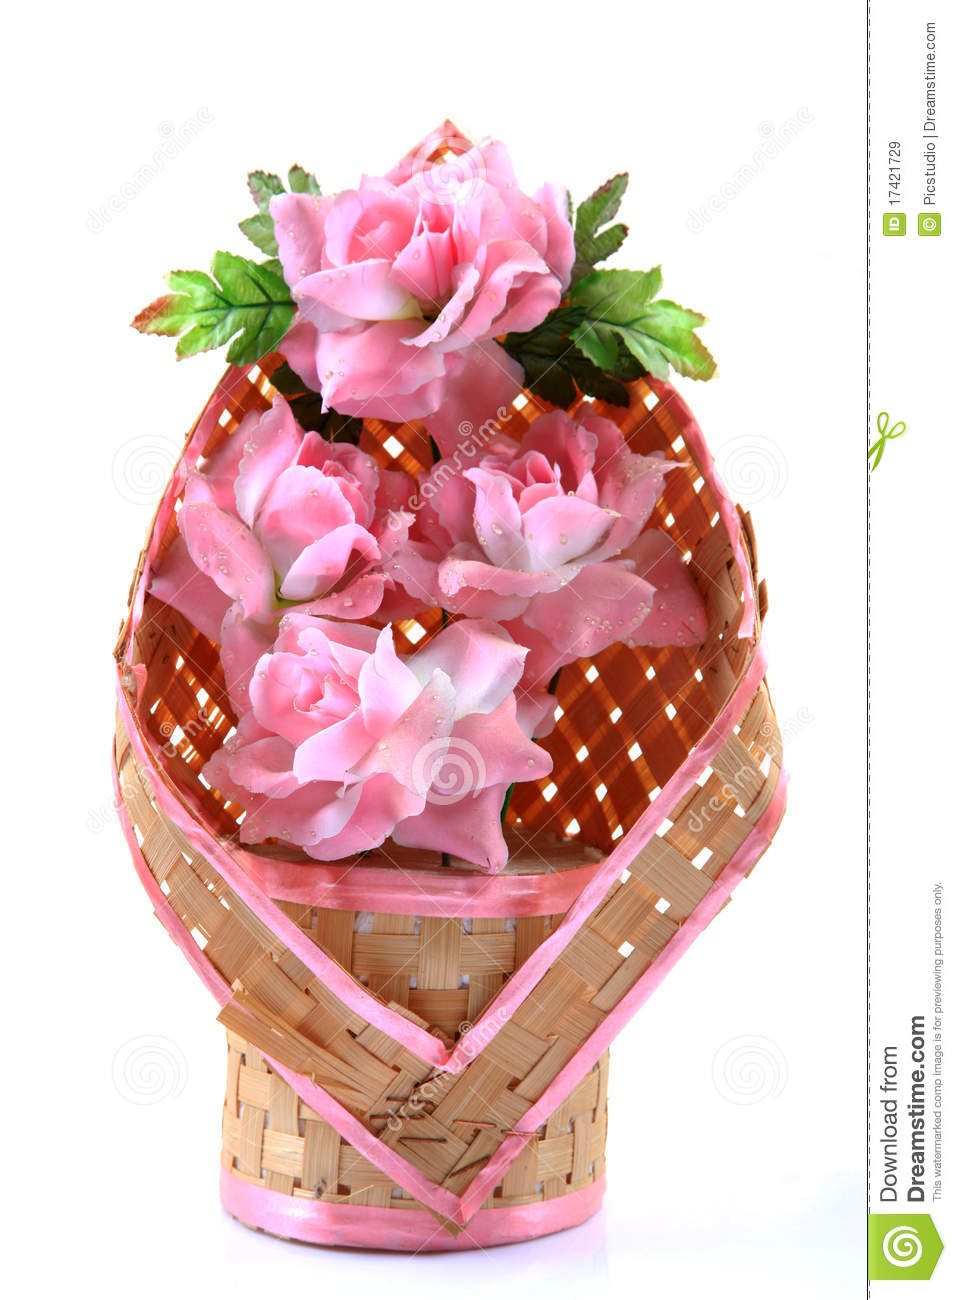 Free download flower bouquets jpg black and white Bouquet of roses images free download - ClipartFest jpg black and white